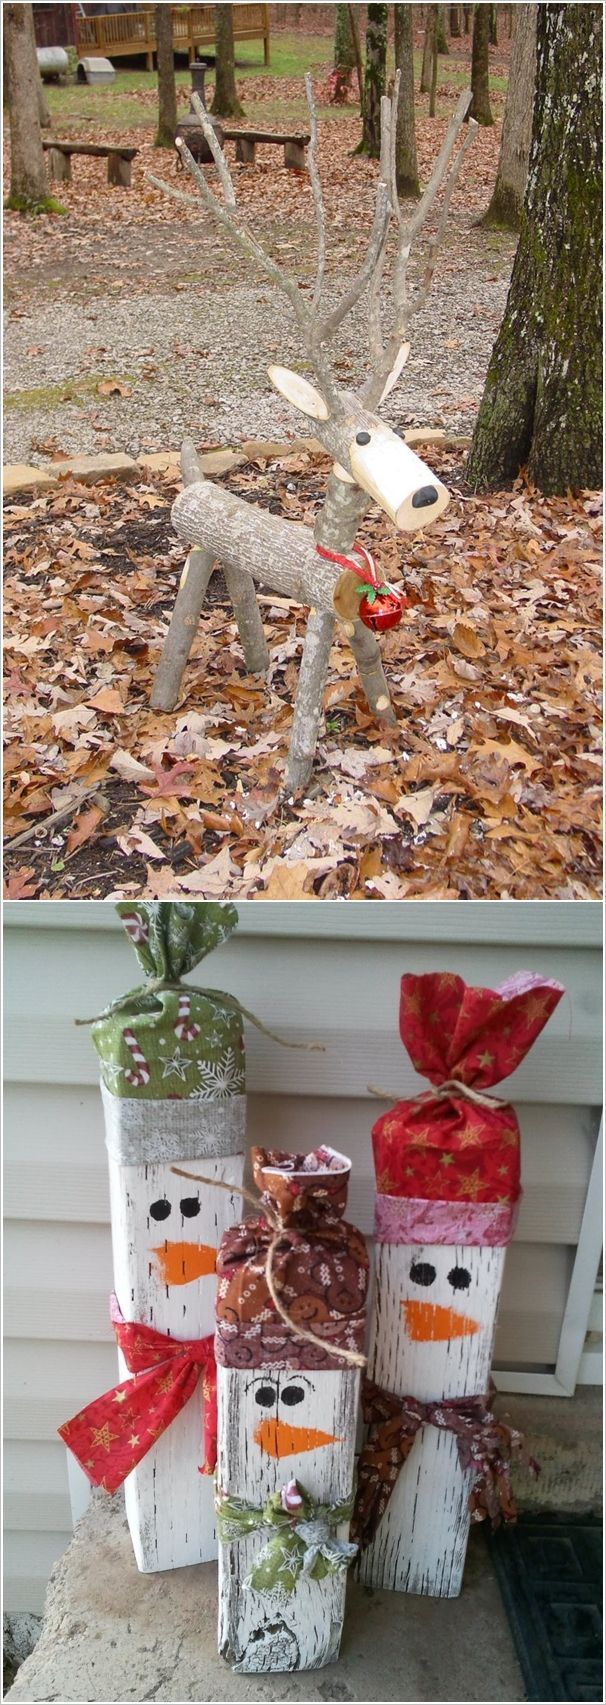 Homemade wooden christmas yard decorations - These Wooden Diy Outdoor Winter And Christmas Decorations Are Adorable I Love The Reindeer